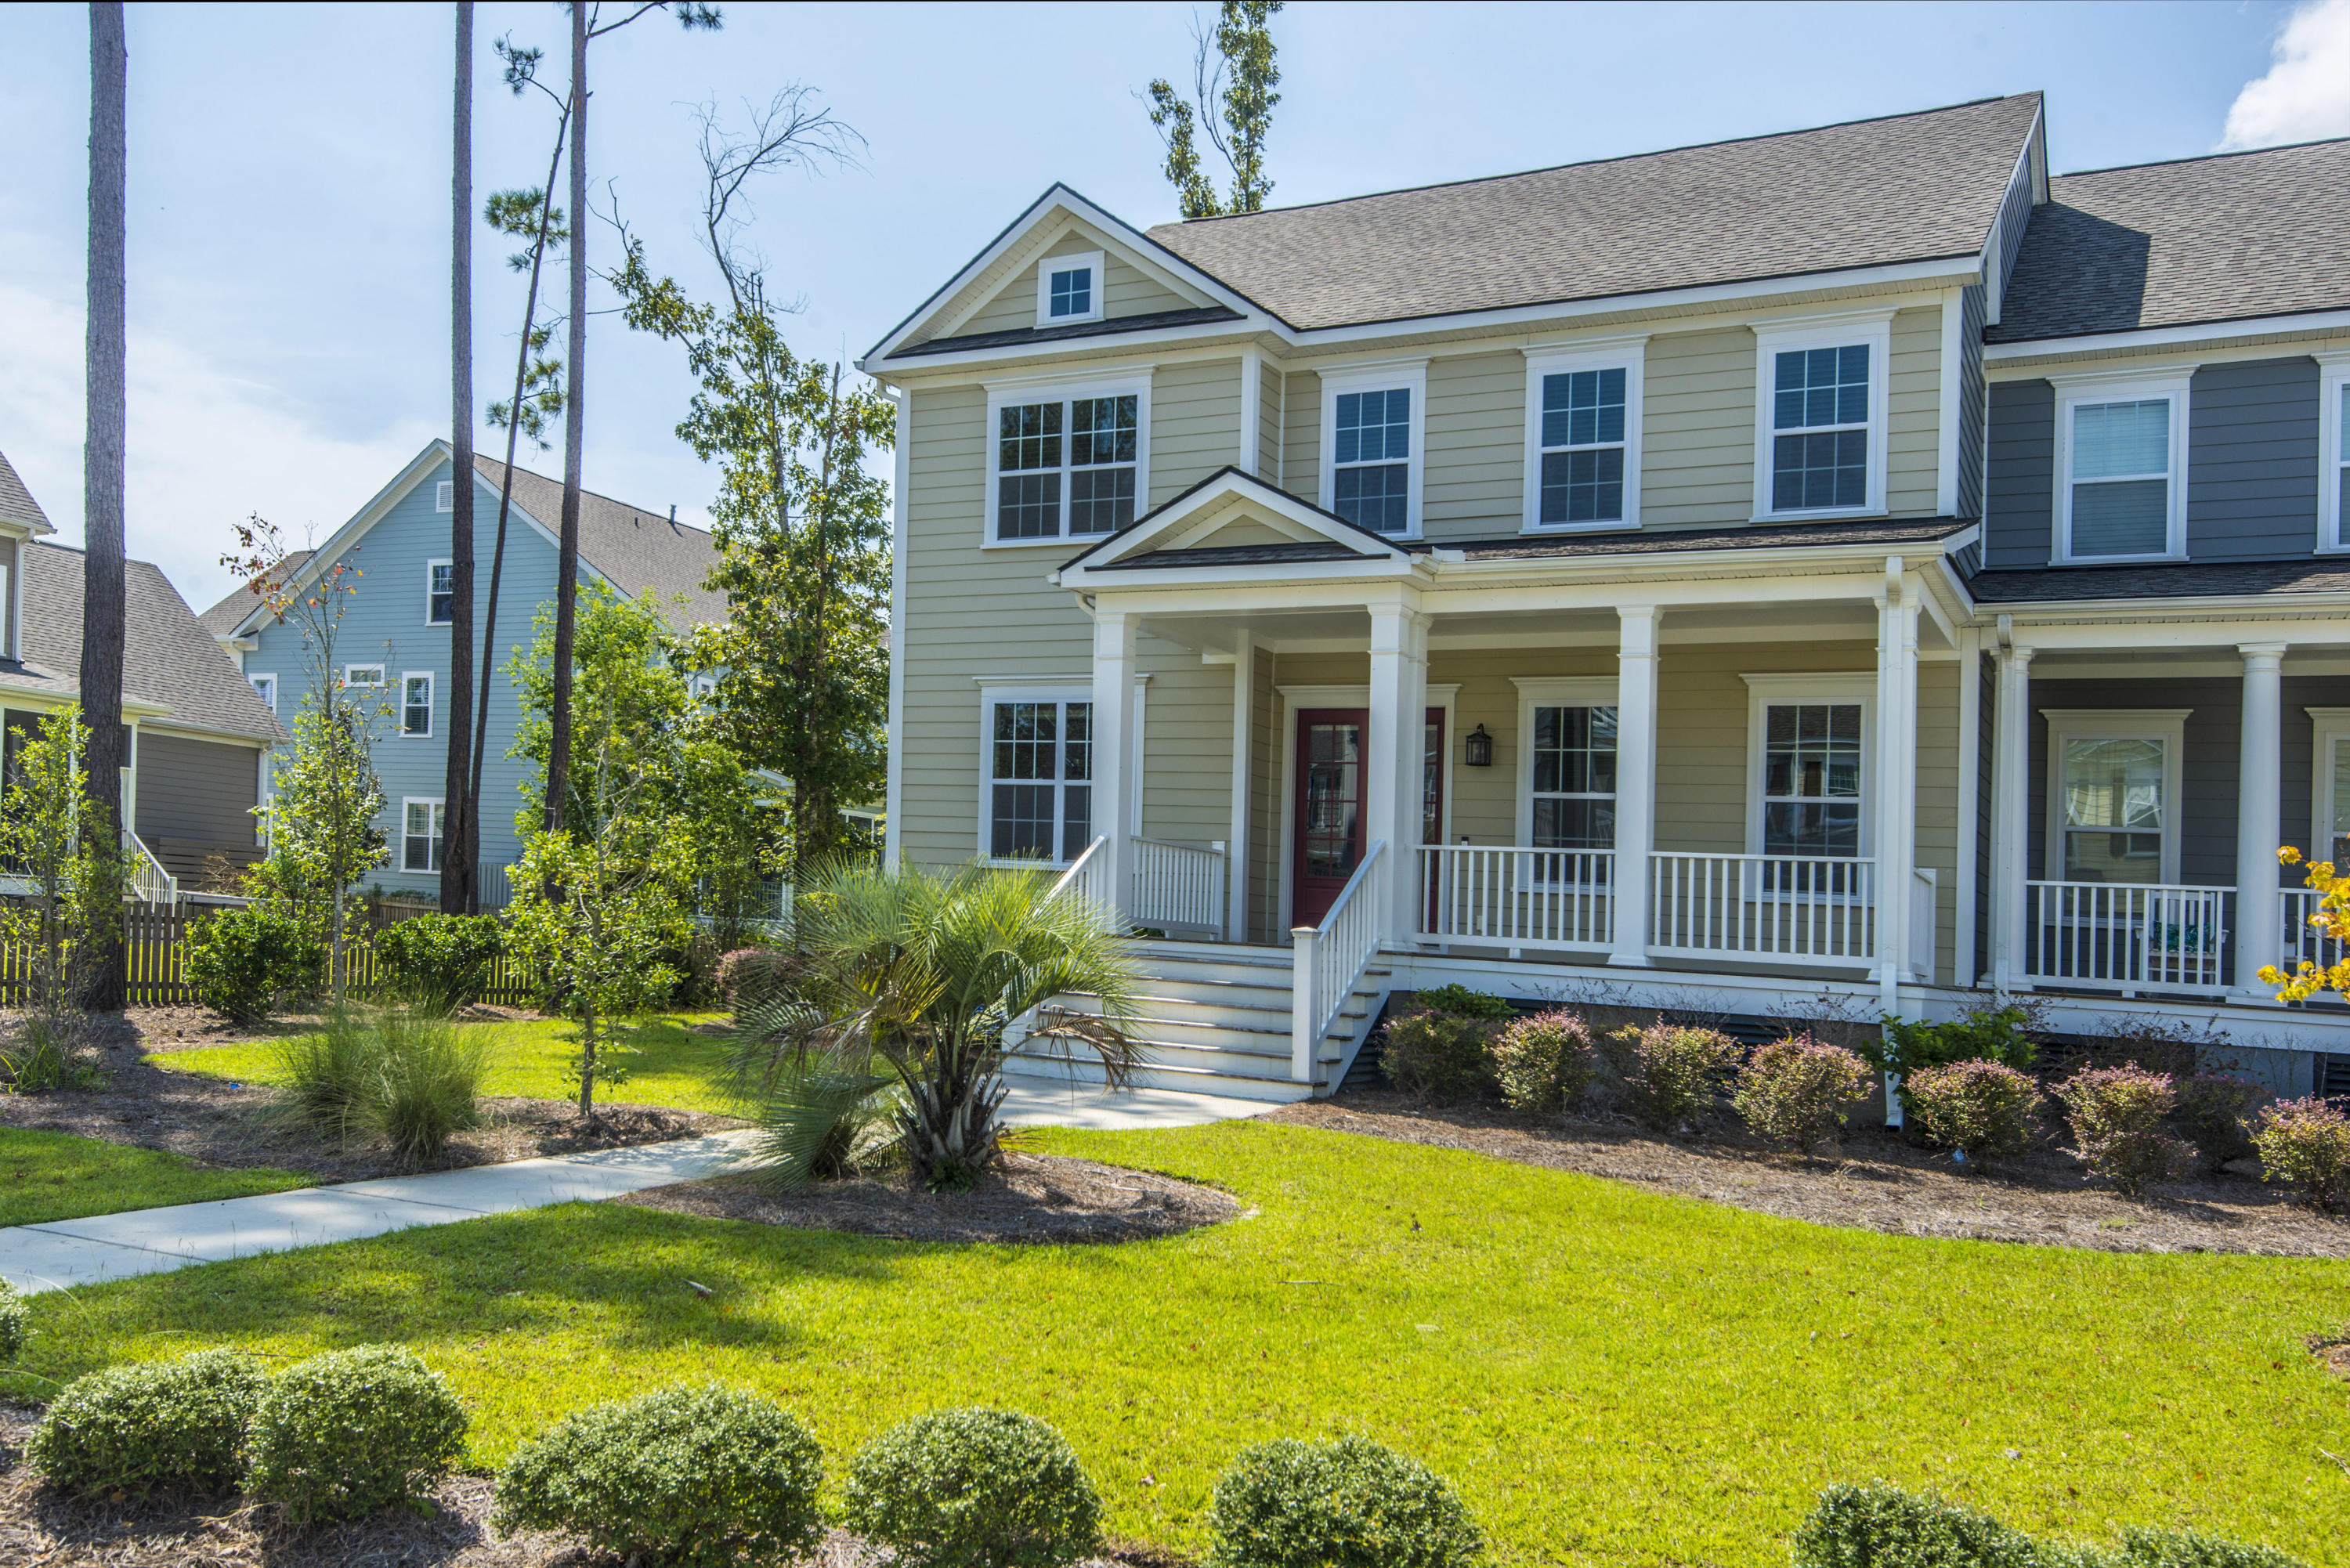 Dunes West Homes For Sale - 3172 Sturbridge, Mount Pleasant, SC - 17